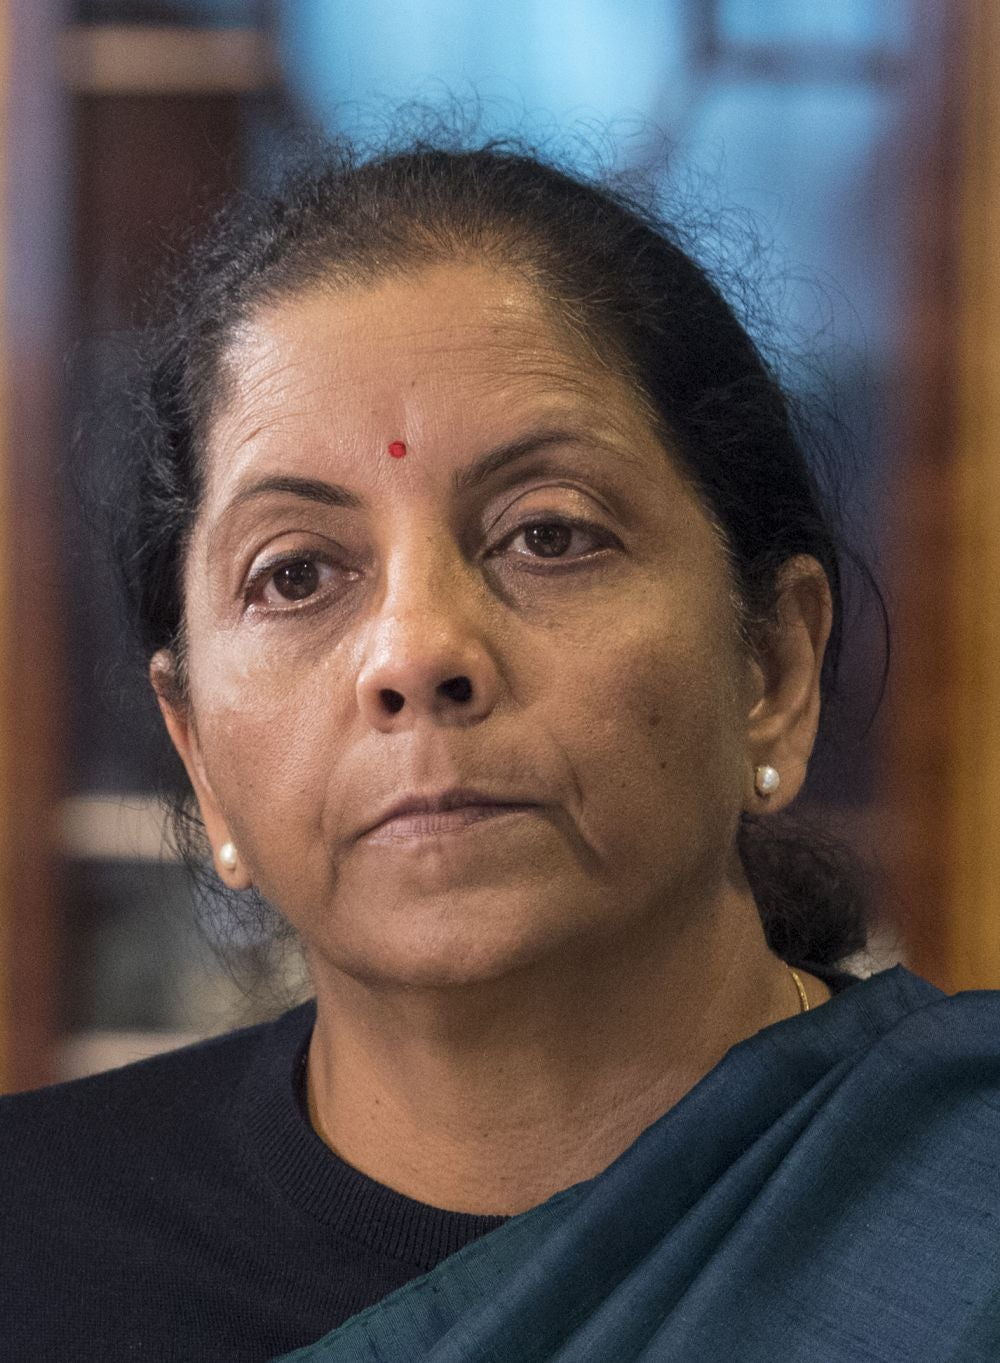 Nirmala Sitharaman - Minister of Finance and Minister of Corporate Affairs